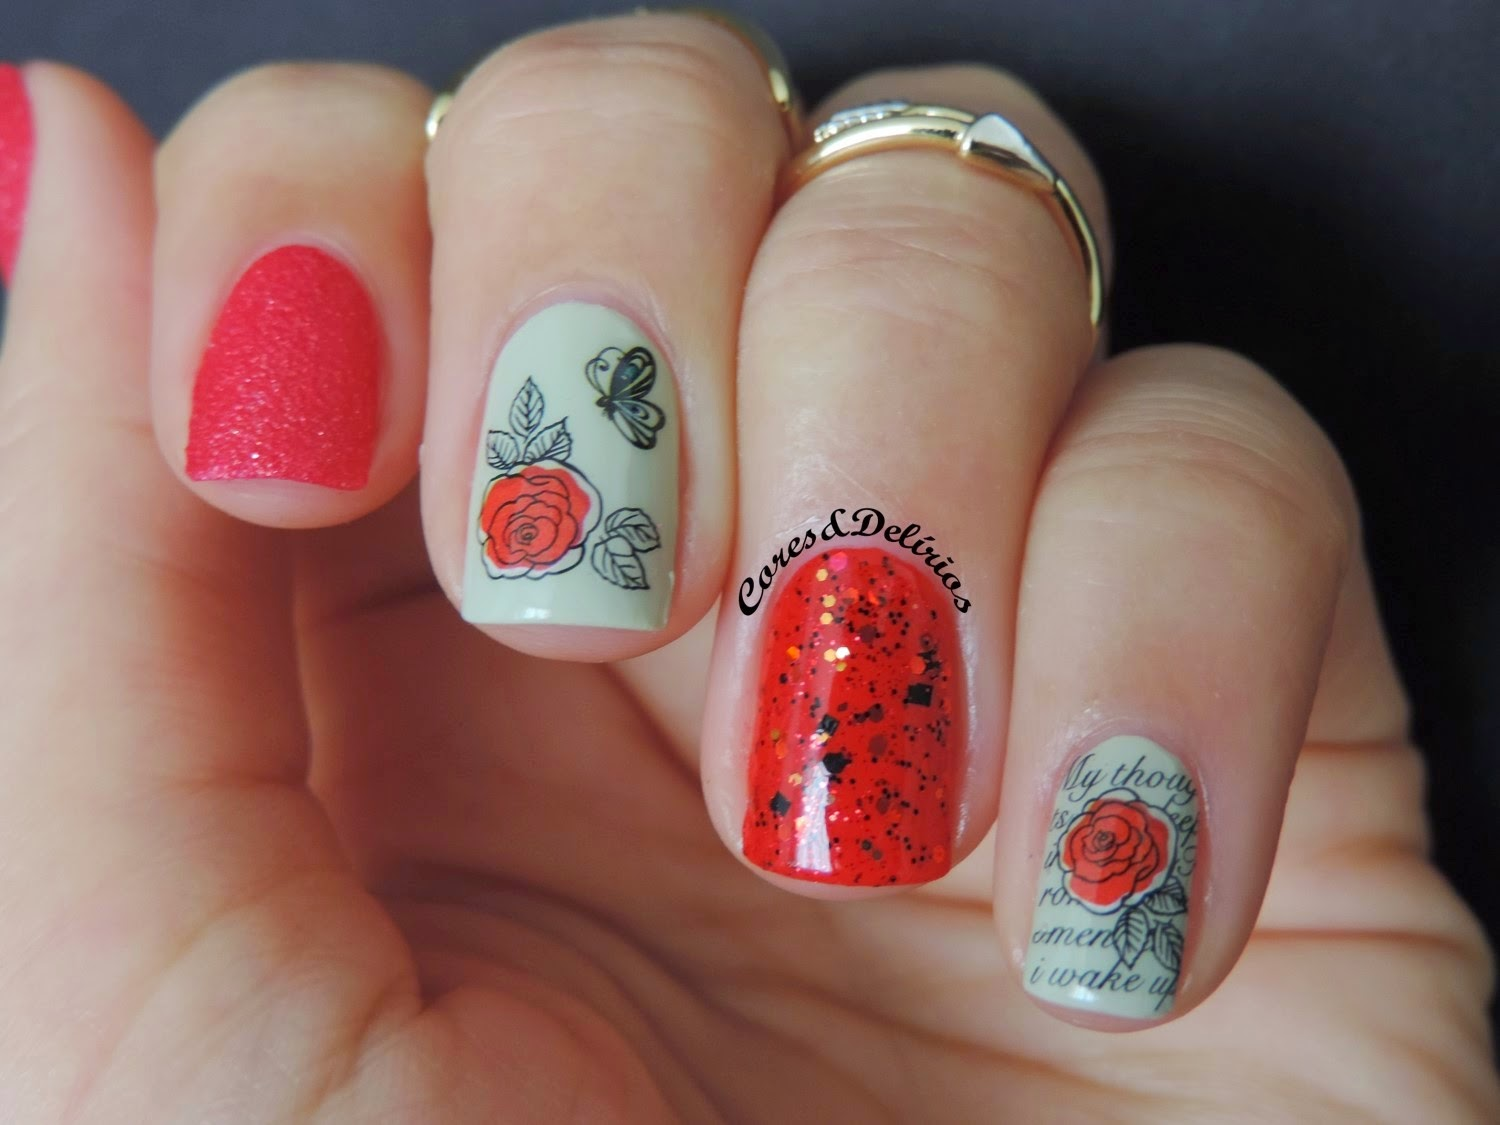 Nail Designs For August : Born pretty store august amazing nail designs show time